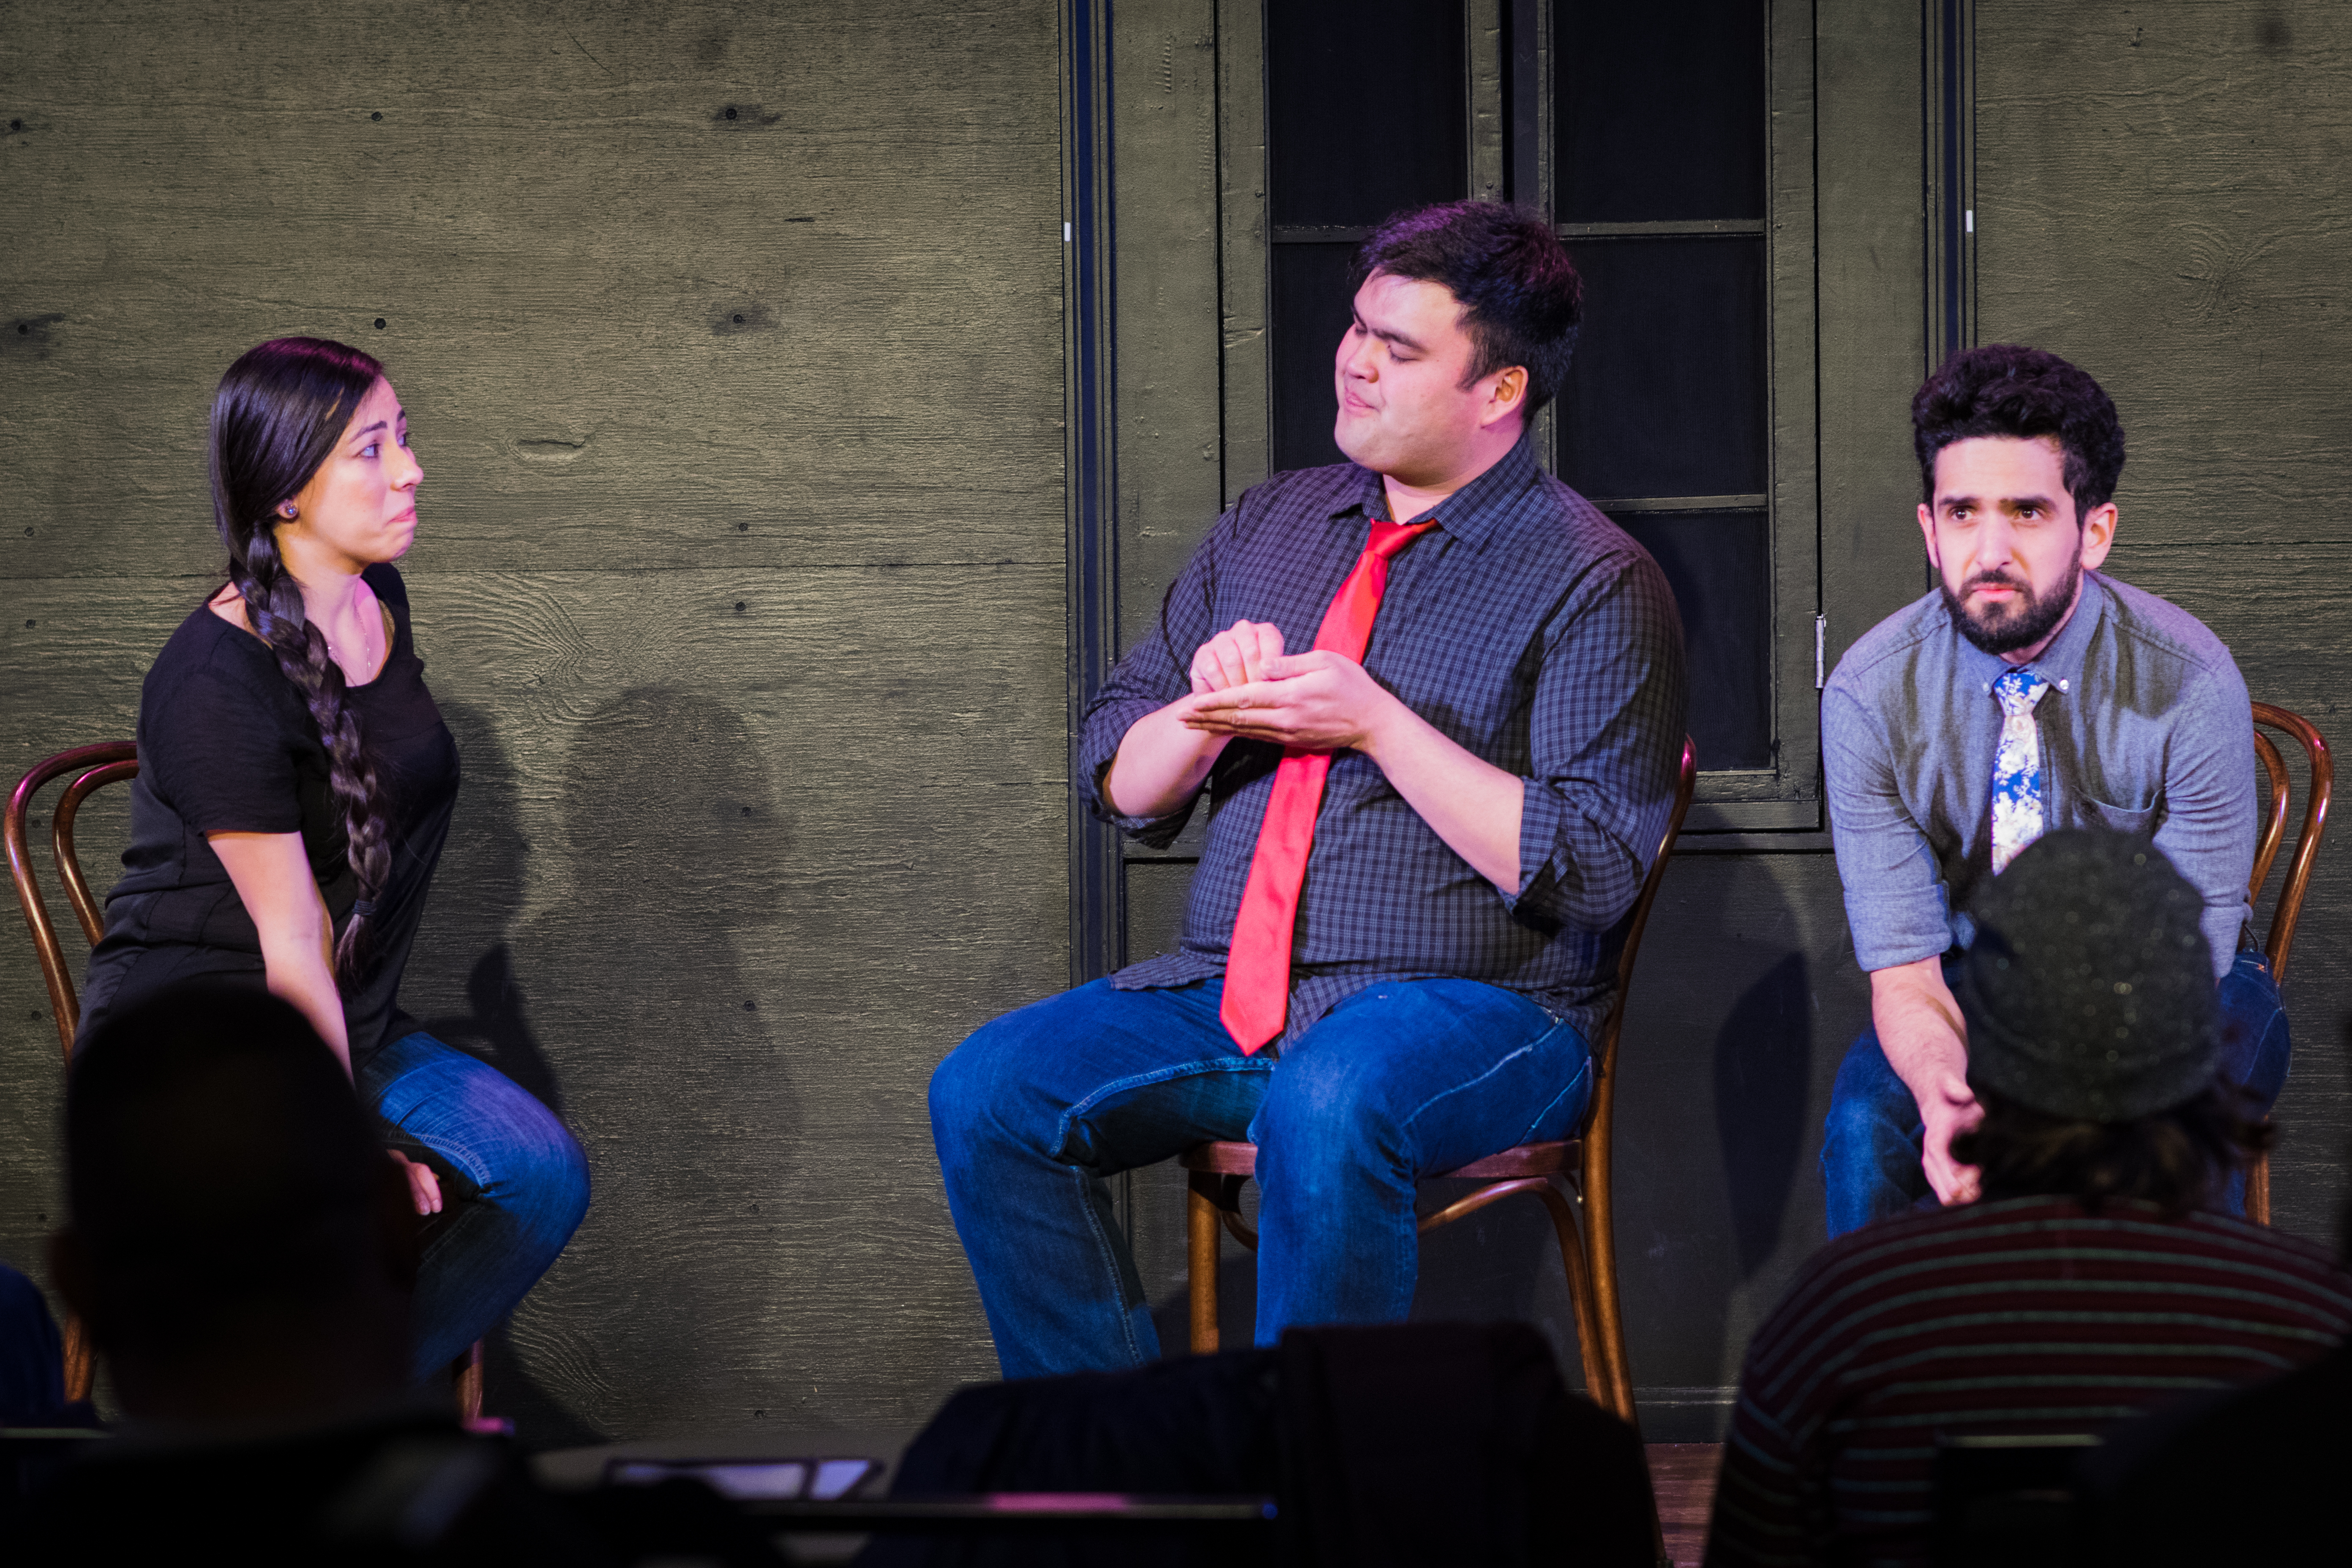 """The performers are seated on-stage. Tawny looks at Dean, who looks back while using one hand to """"write"""" on the other. Aaron looks out at the audience. The backs of two audience members' heads are visible. Behind the performers is the black wall of the stage, with a black, covered window."""